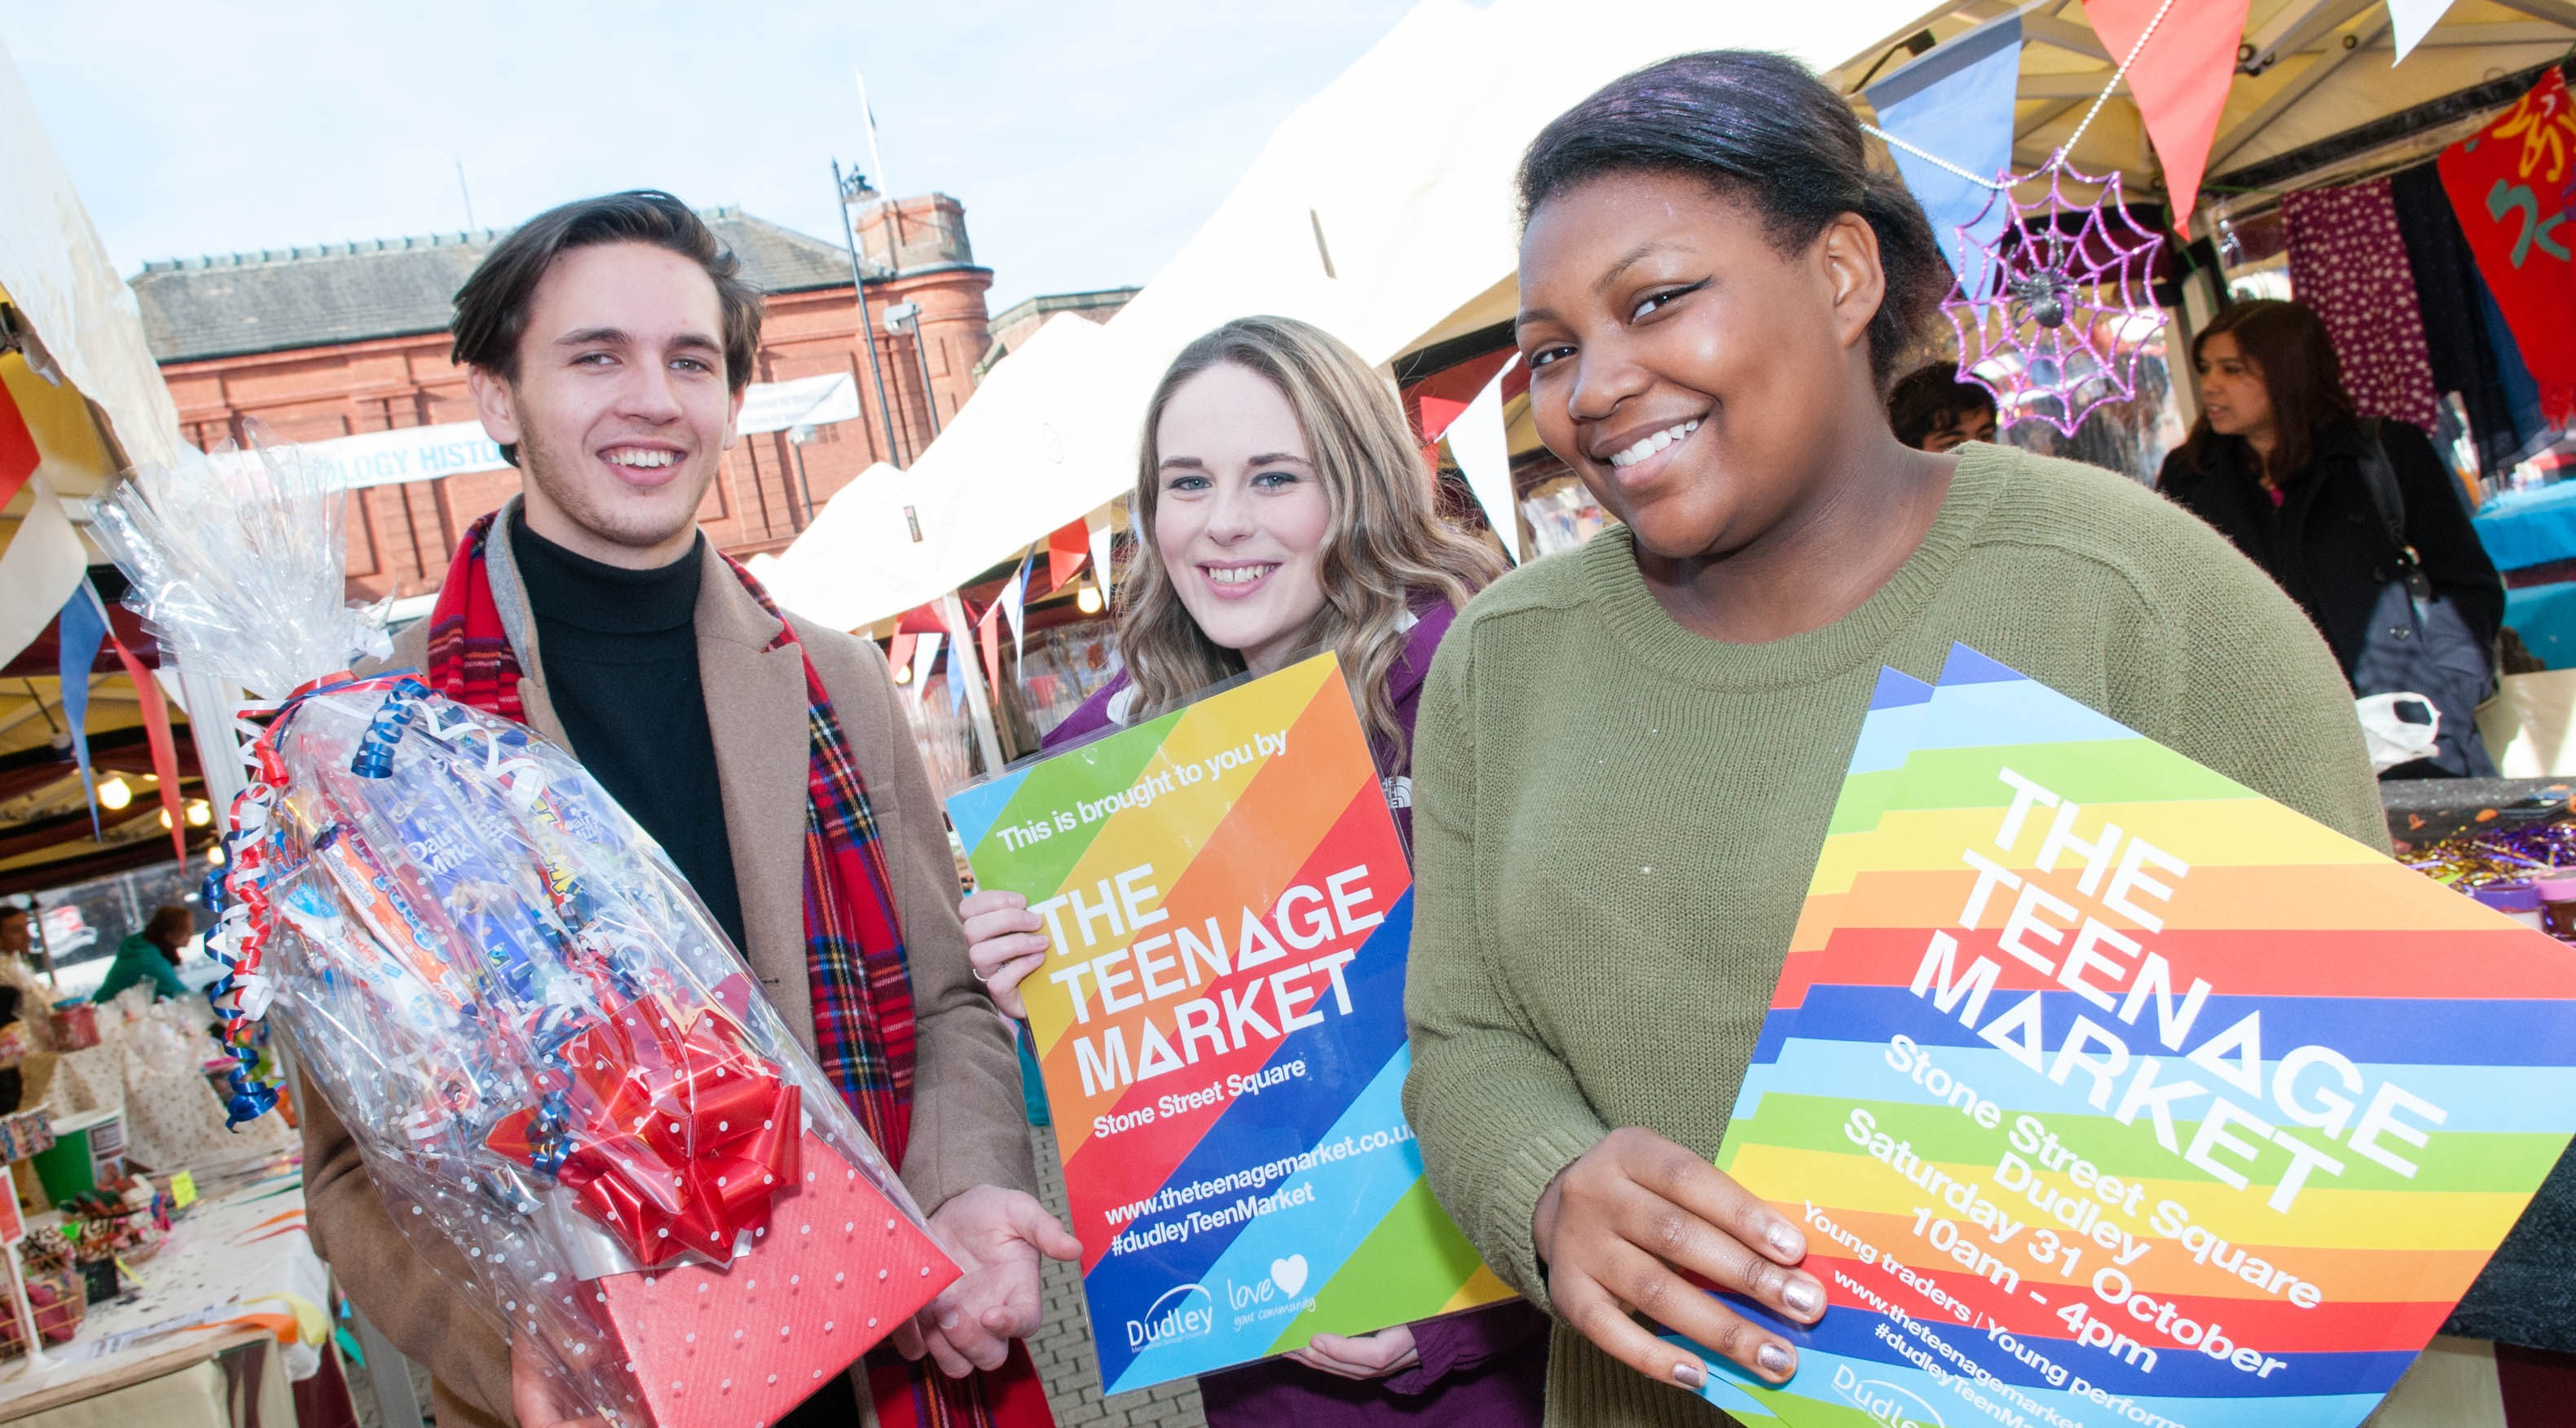 Teenage Market returns to the Red House Glass Cone